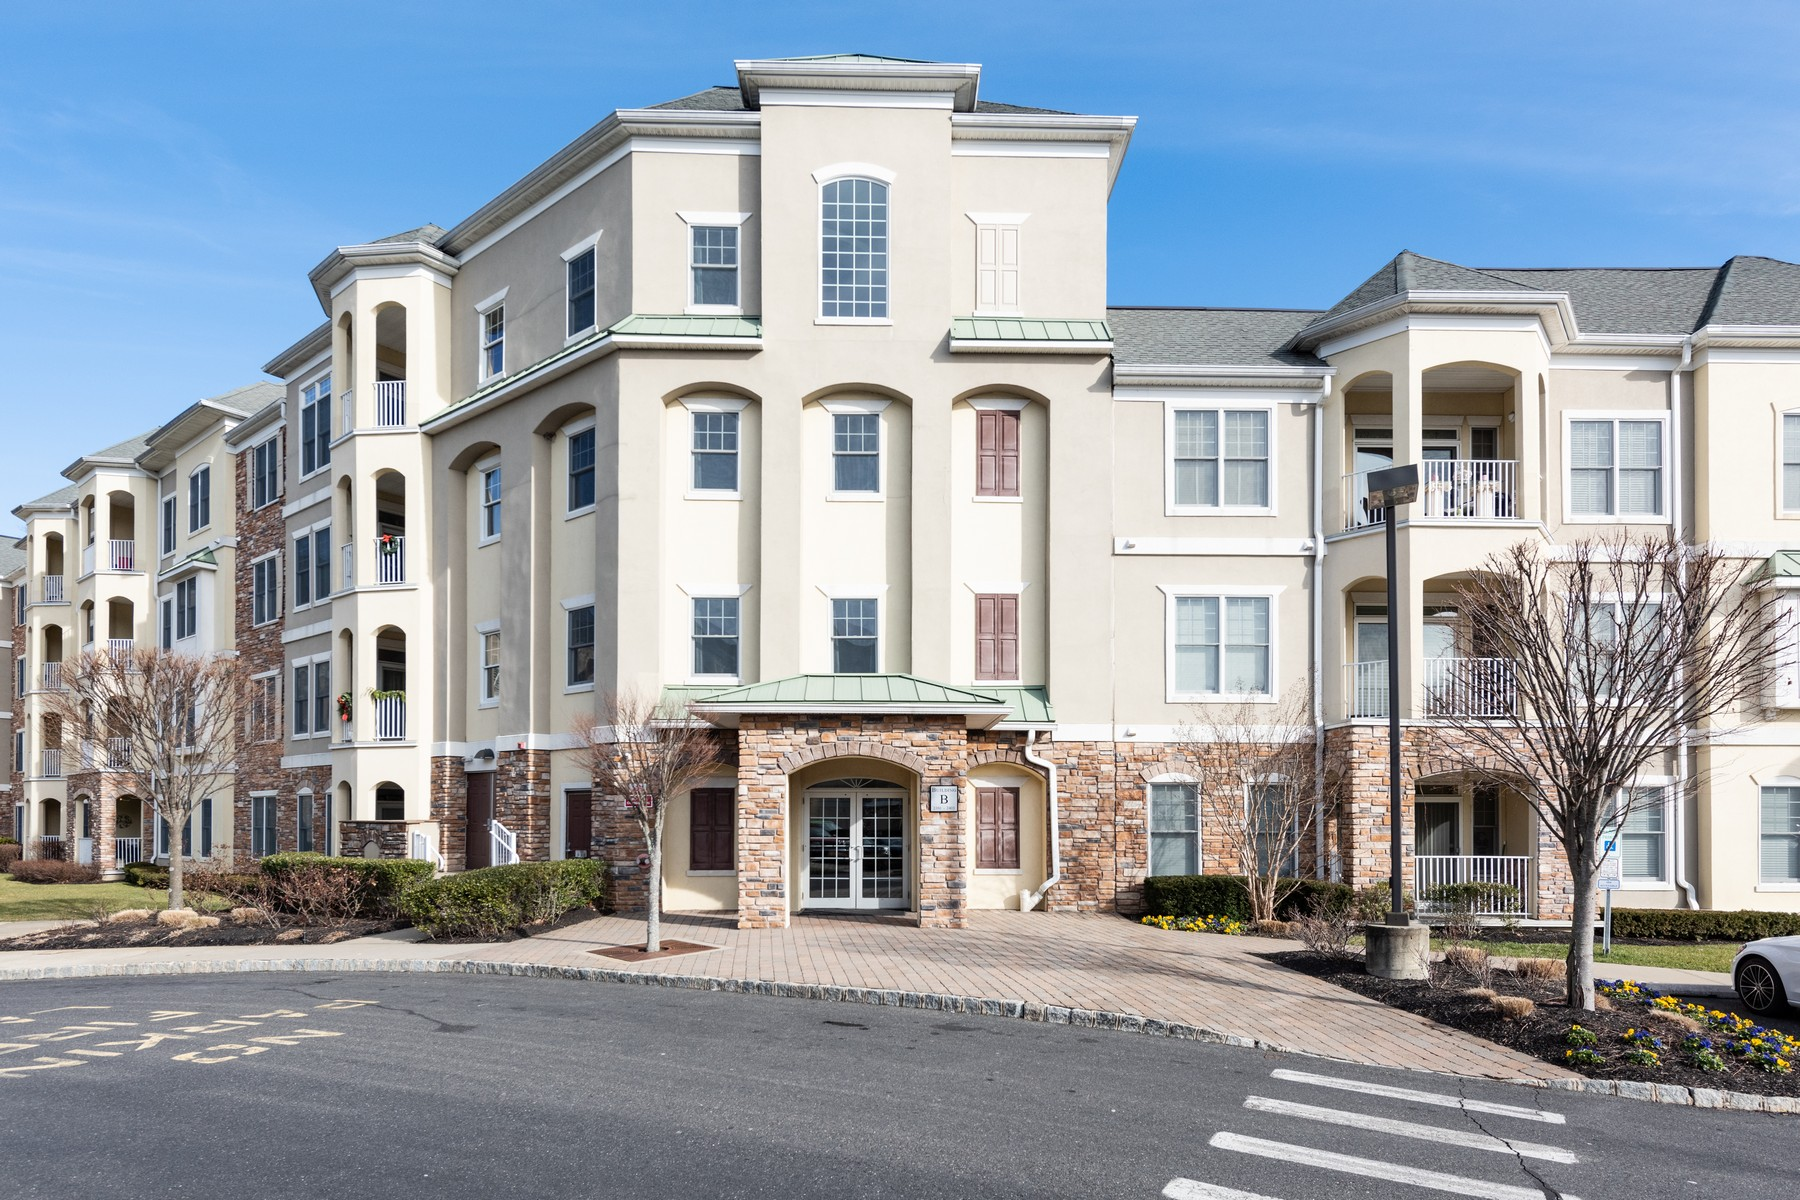 Condominiums for Sale at 2223 Xanadu Lane, Wall Wall, New Jersey 07719 United States